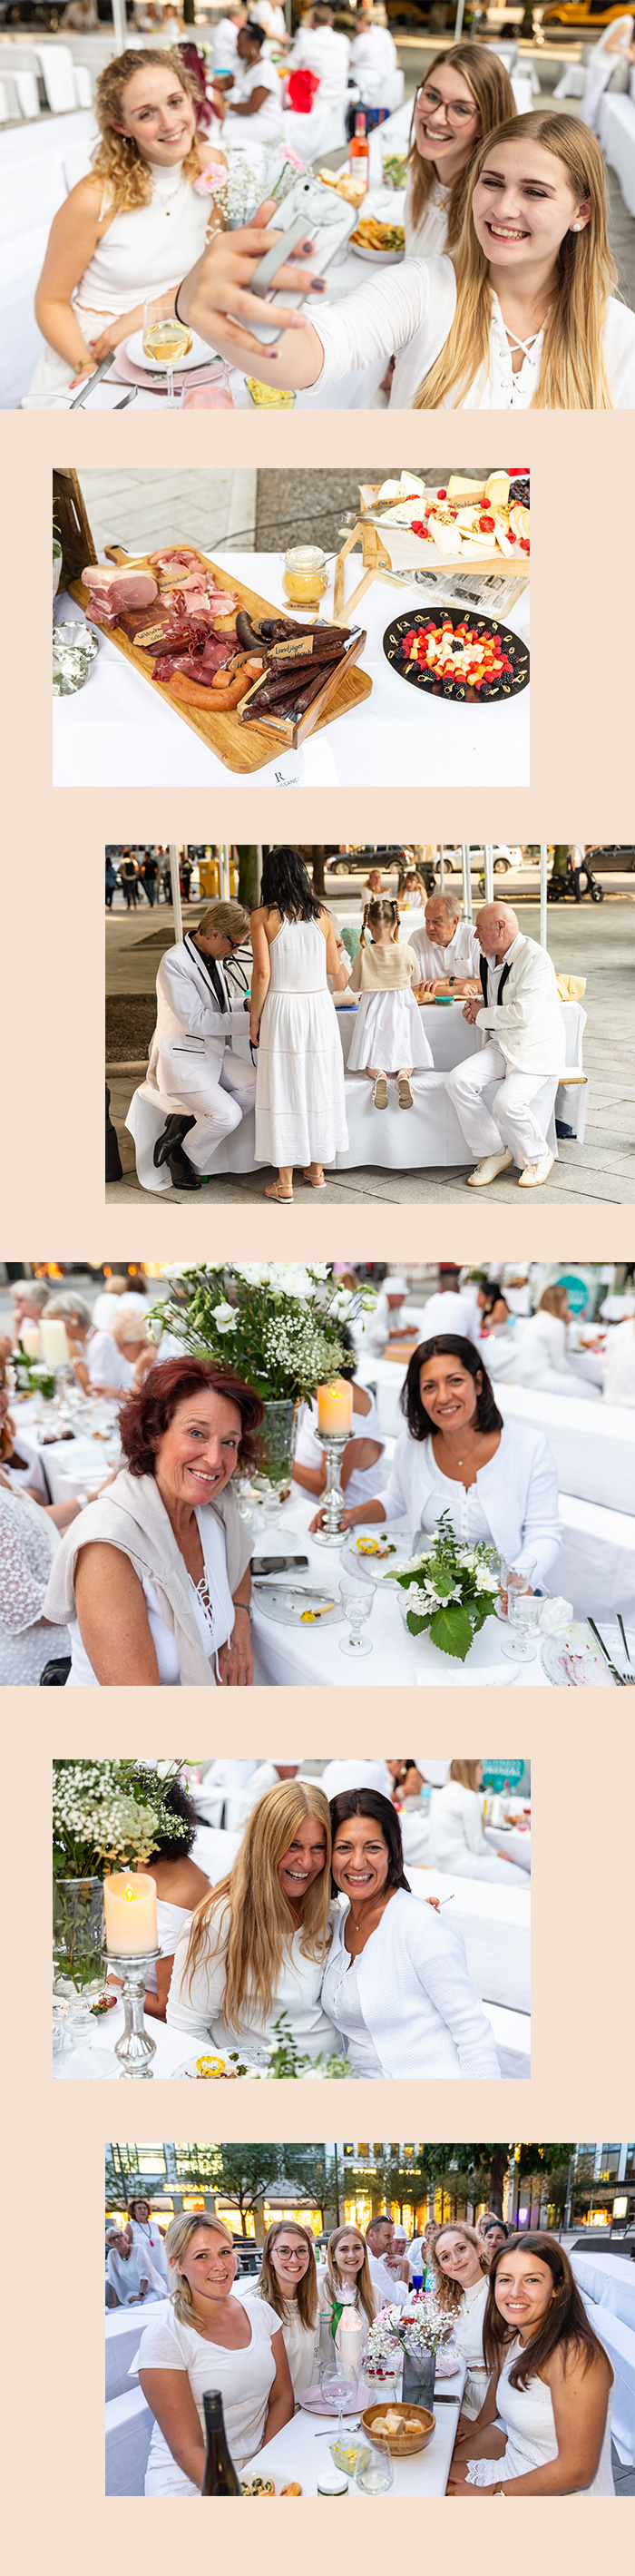 White Dinner Hamburg 2019 - ABC Viertel